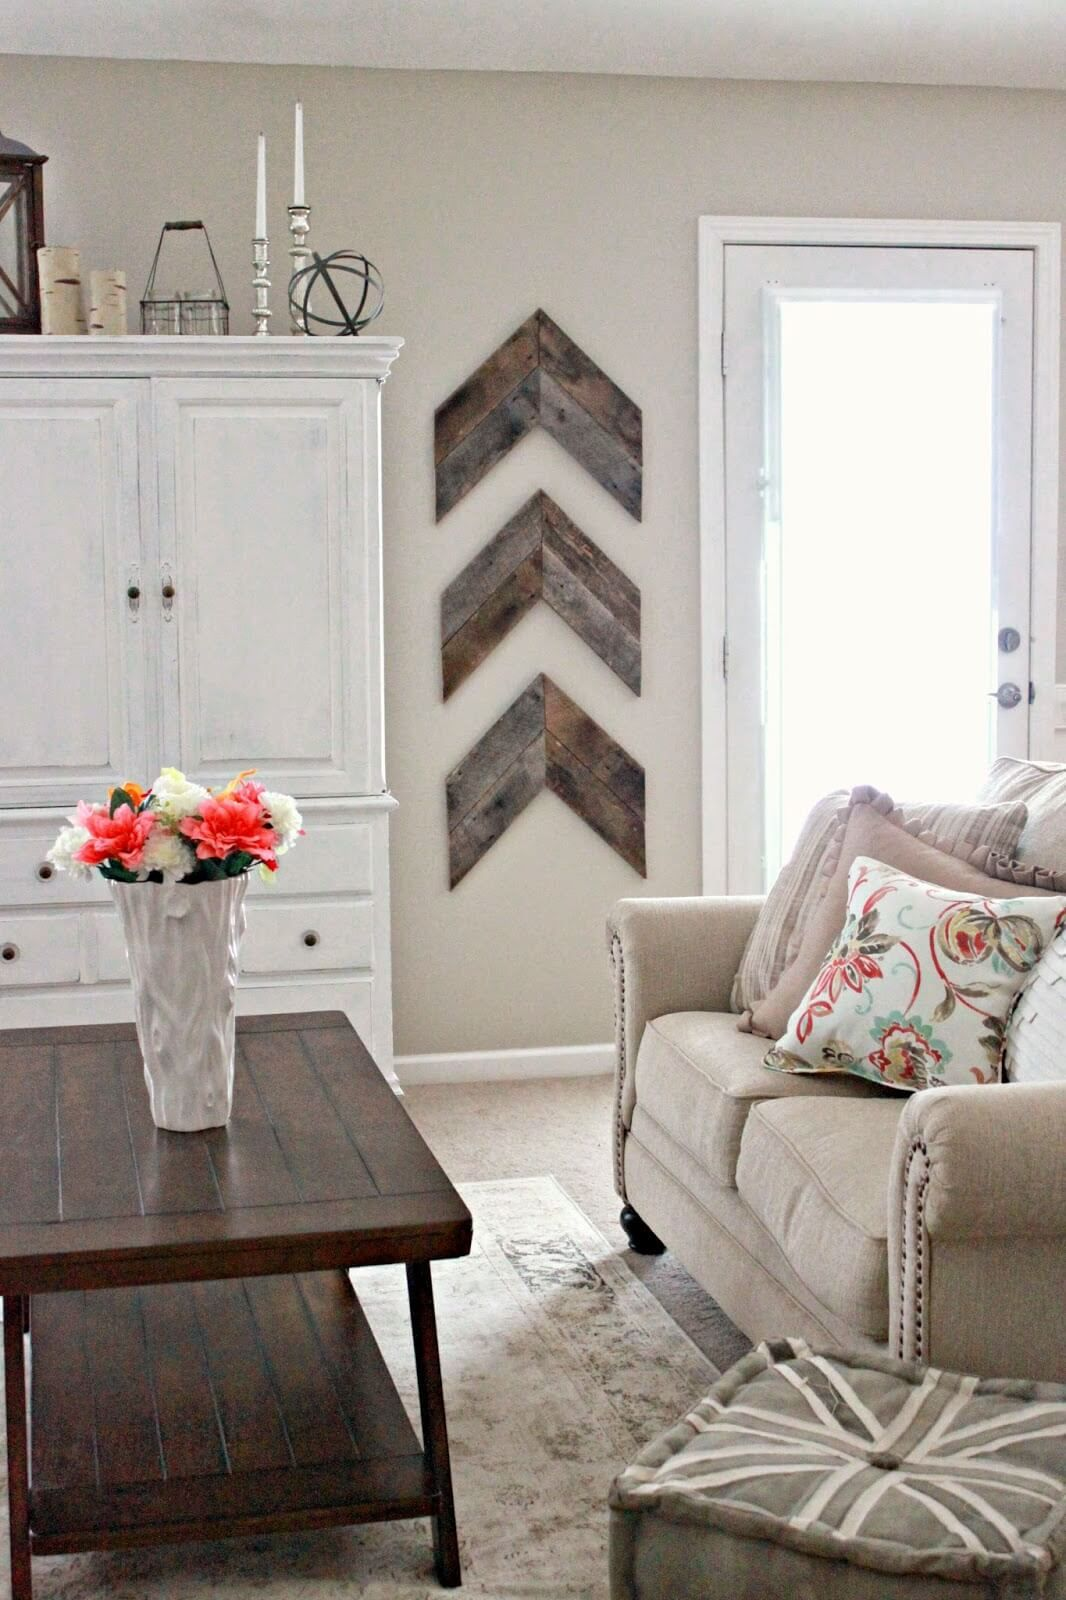 35 Rustic Farmhouse Living Room Design And Decor Ideas For Your Home Part 61